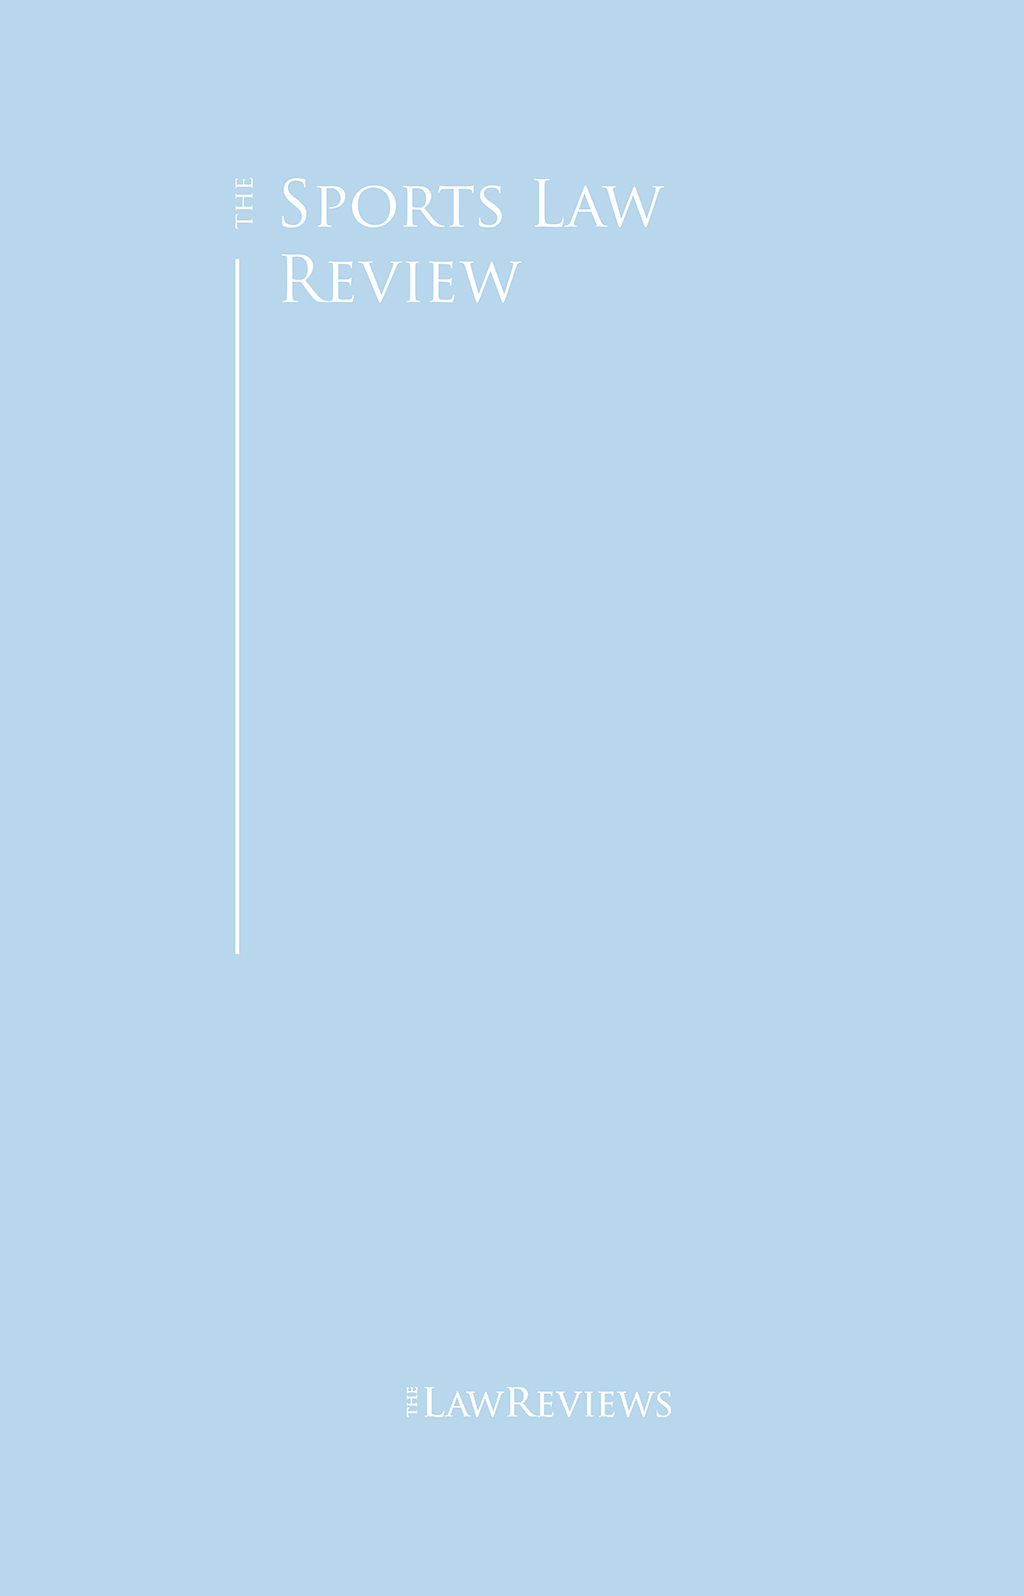 The Sports Law Review